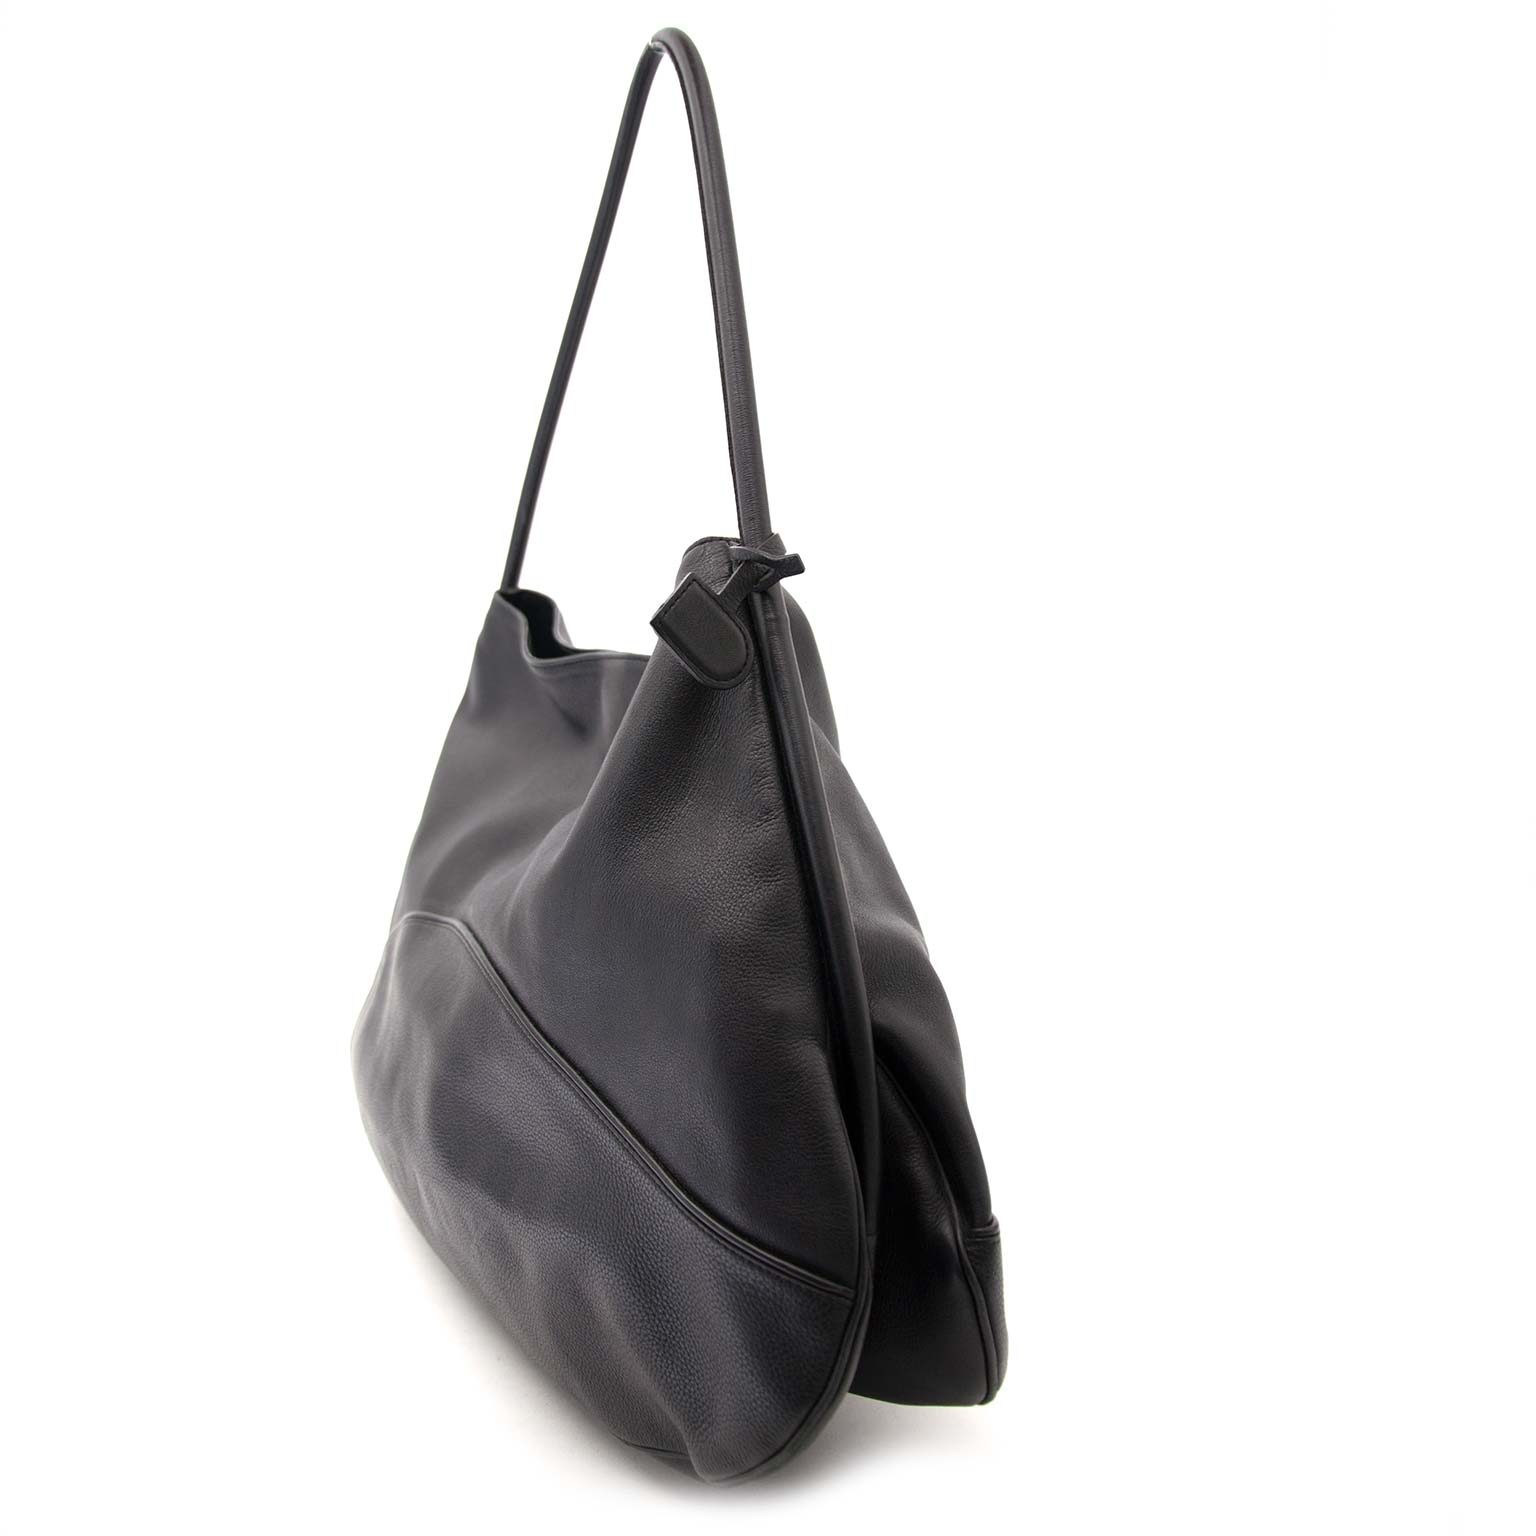 Delvaux Black Leather Large Shopper Tote Buy authentic designer Delvaux secondhand bags at Labellov at the best price. Safe and secure shopping. Koop tweedehands authentieke Delvaux tassen bij designer webwinkel labellov.